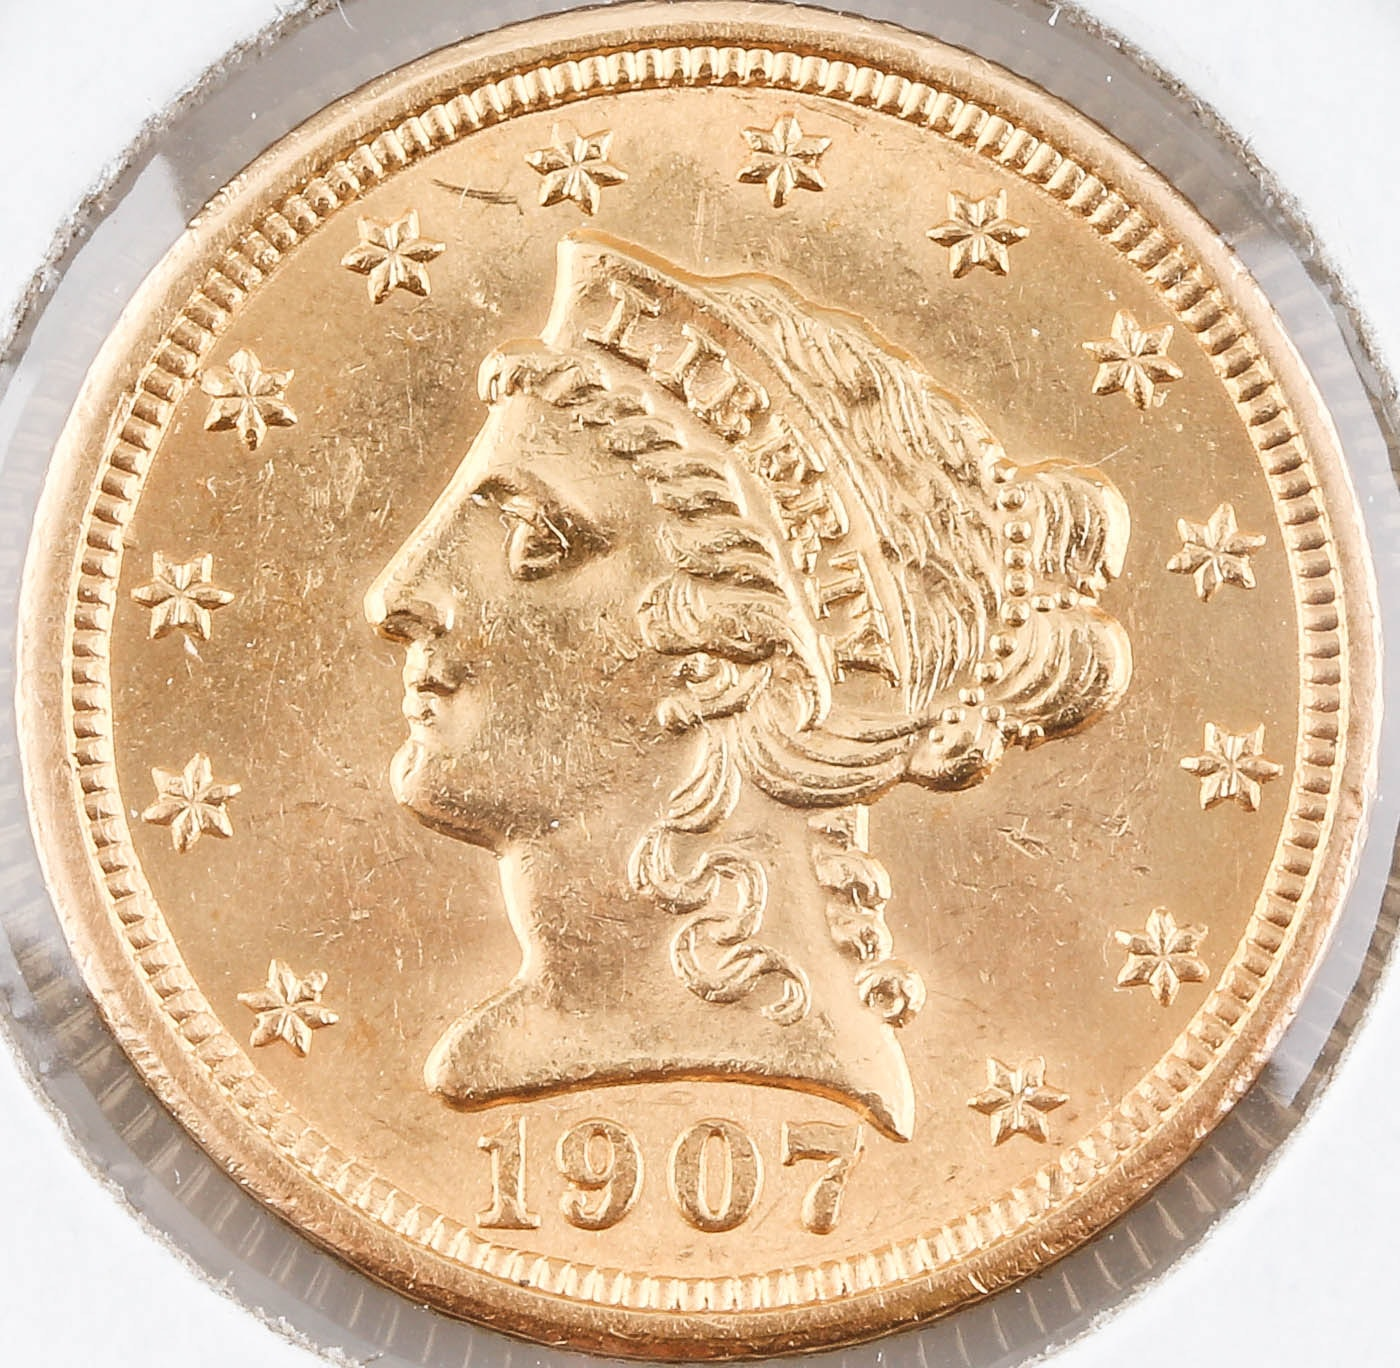 1907 Liberty Head $2 1/2 Gold Coin